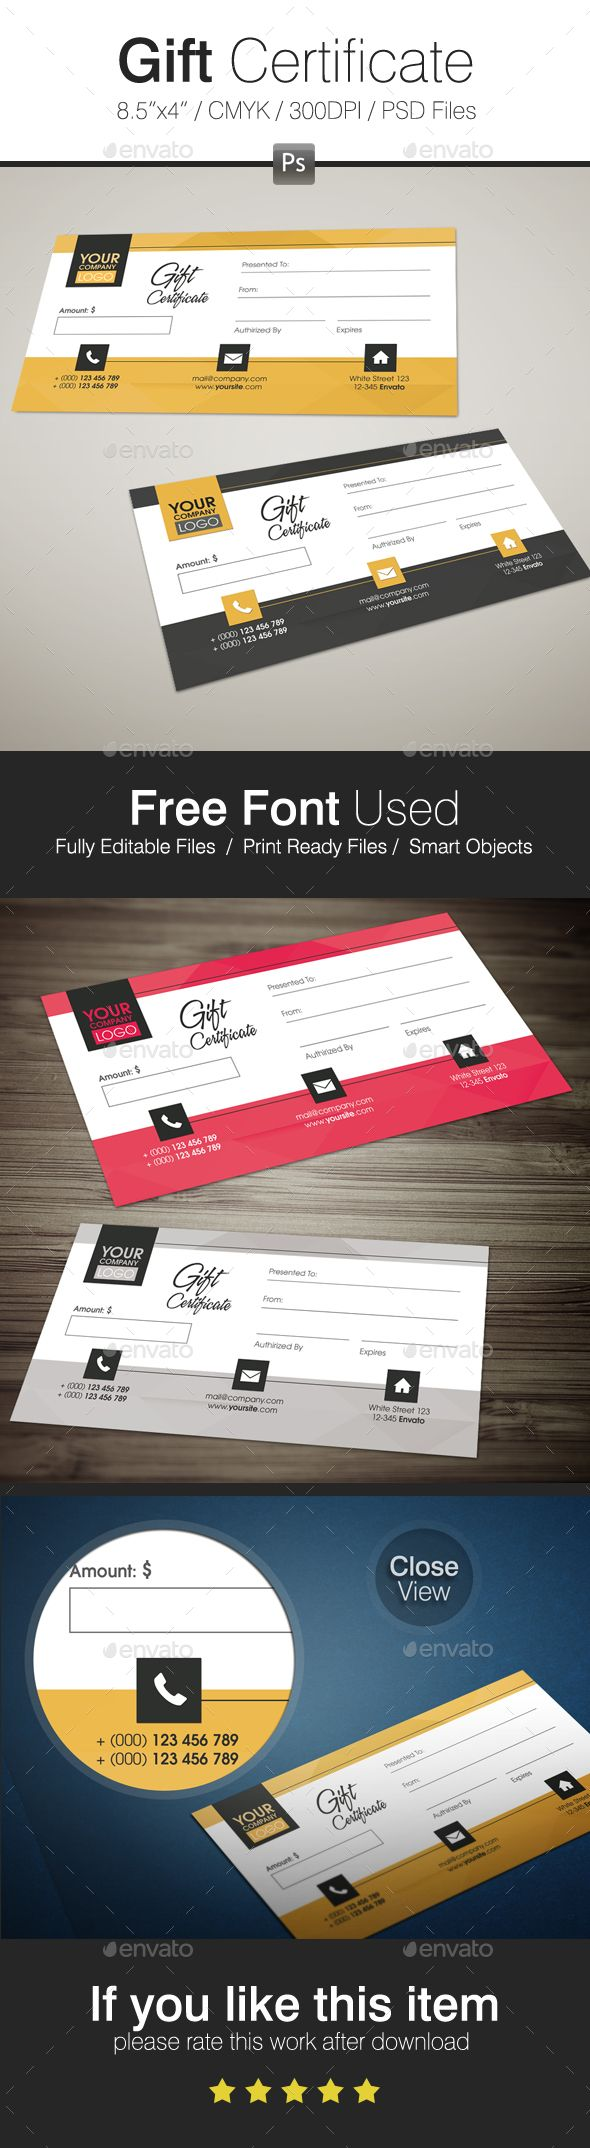 Gift Certificate - Loyalty Cards Cards & Invites #design Download: https://graphicriver.net/item/gift-certificate/17377924